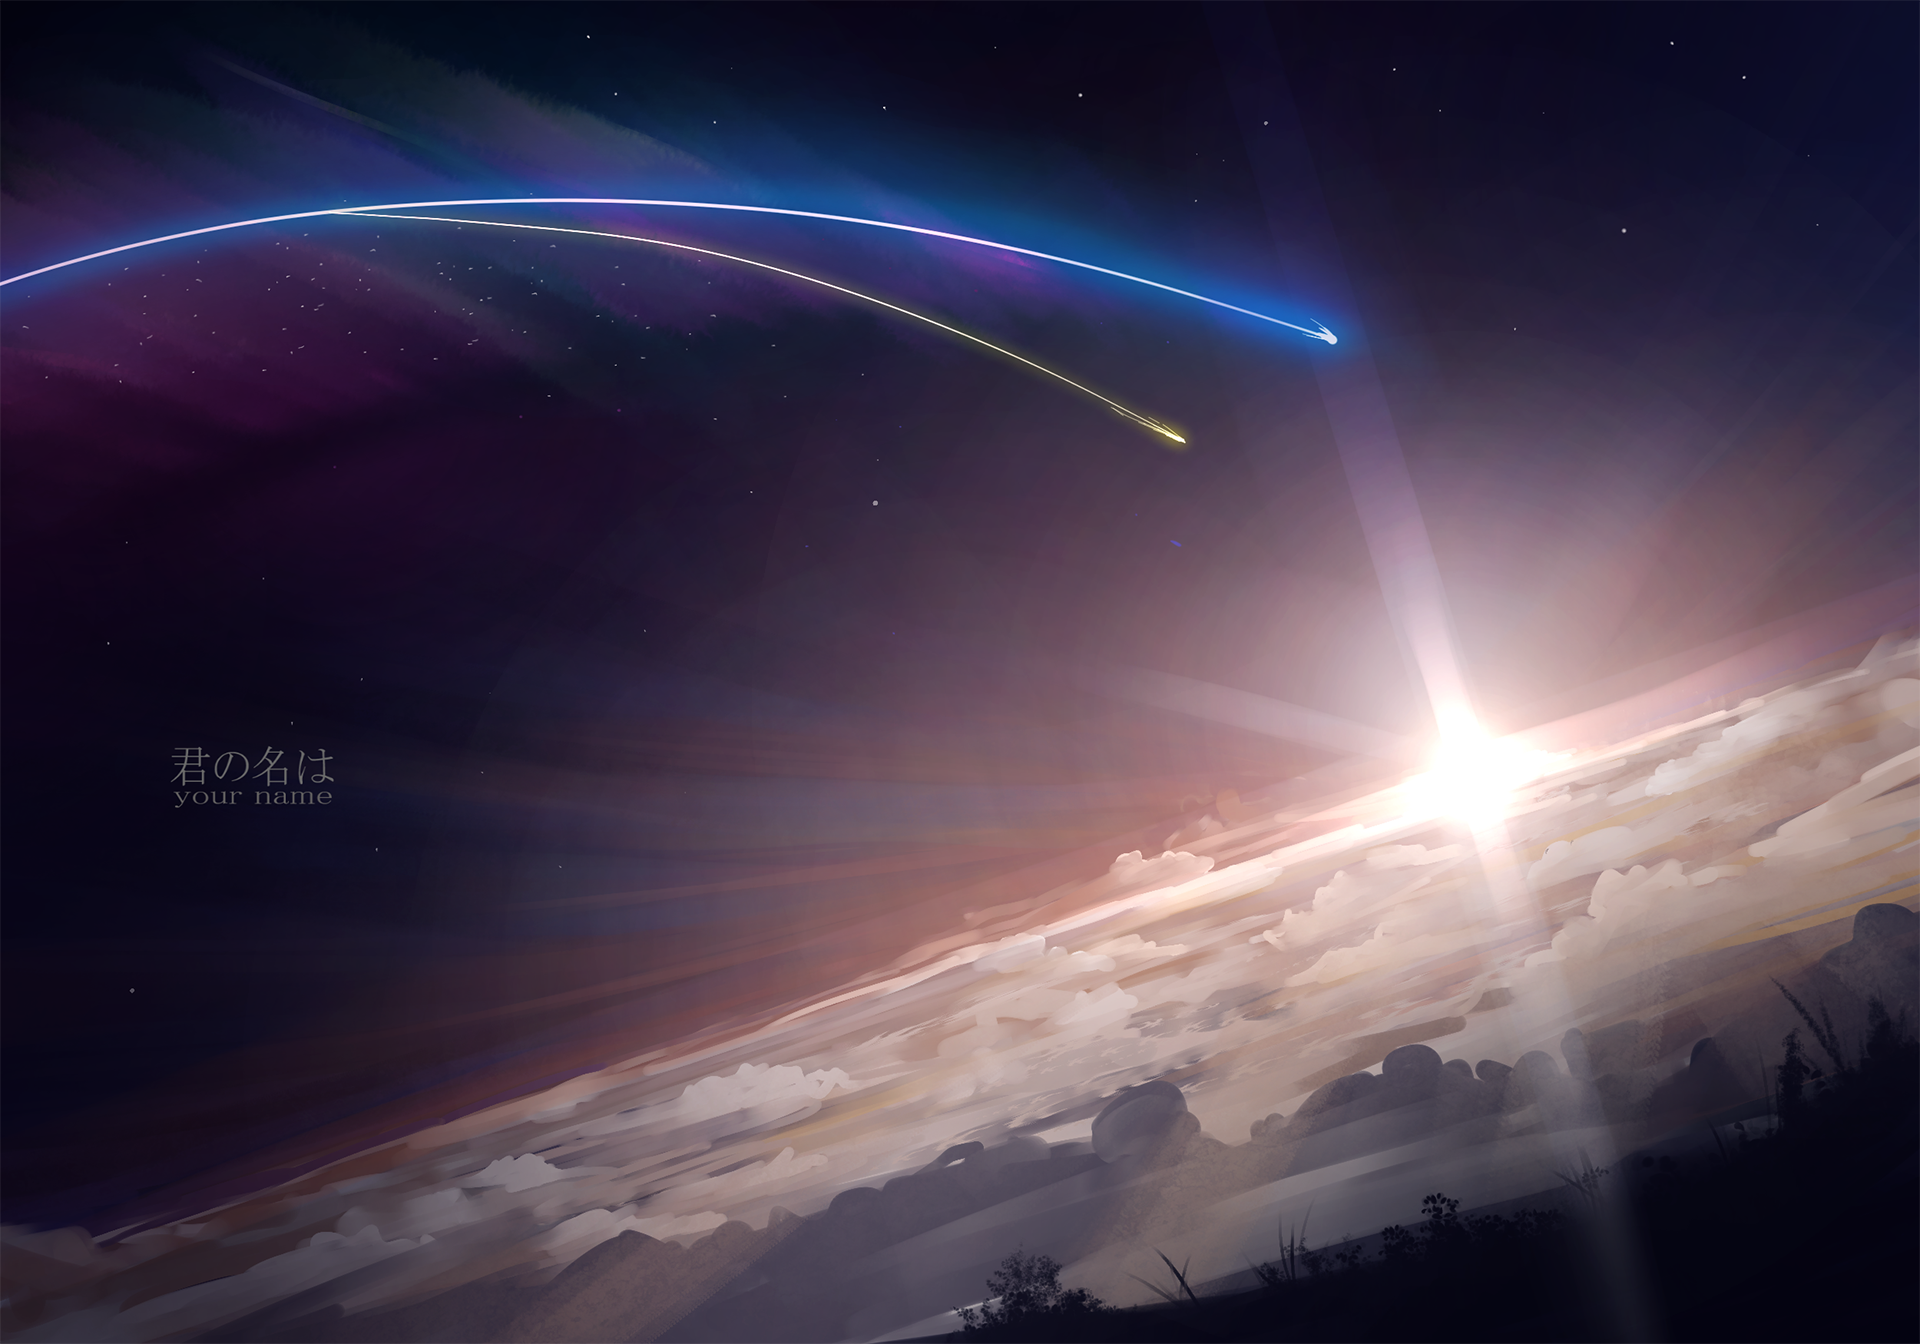 Hd wallpaper name - Anime Your Name Sky Kimi No Na Wa Wallpaper